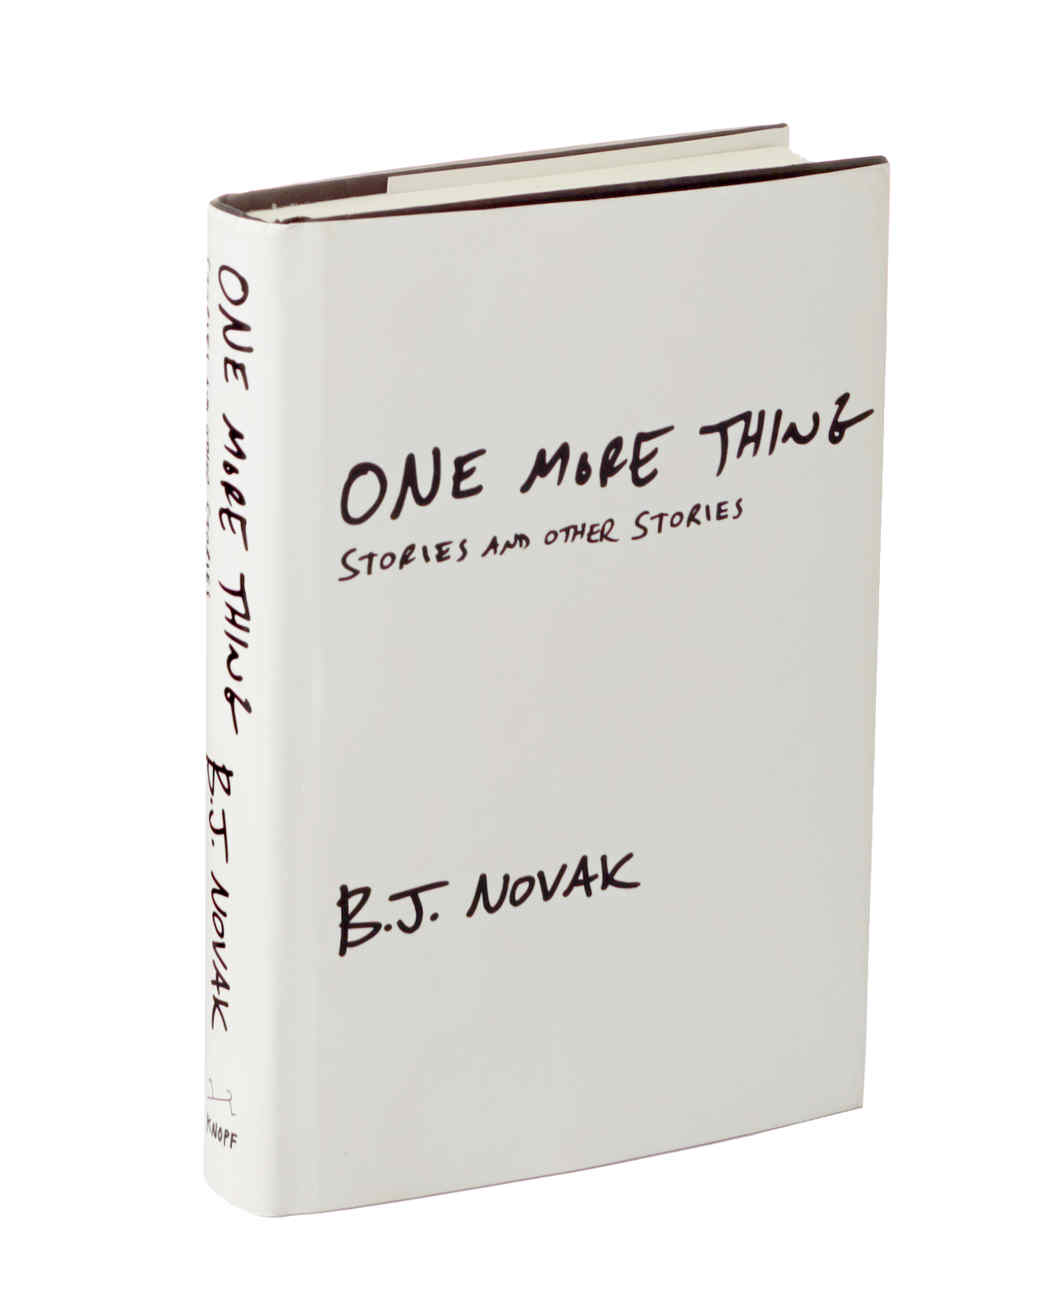 book-one-more-thing-080-d111241.jpg